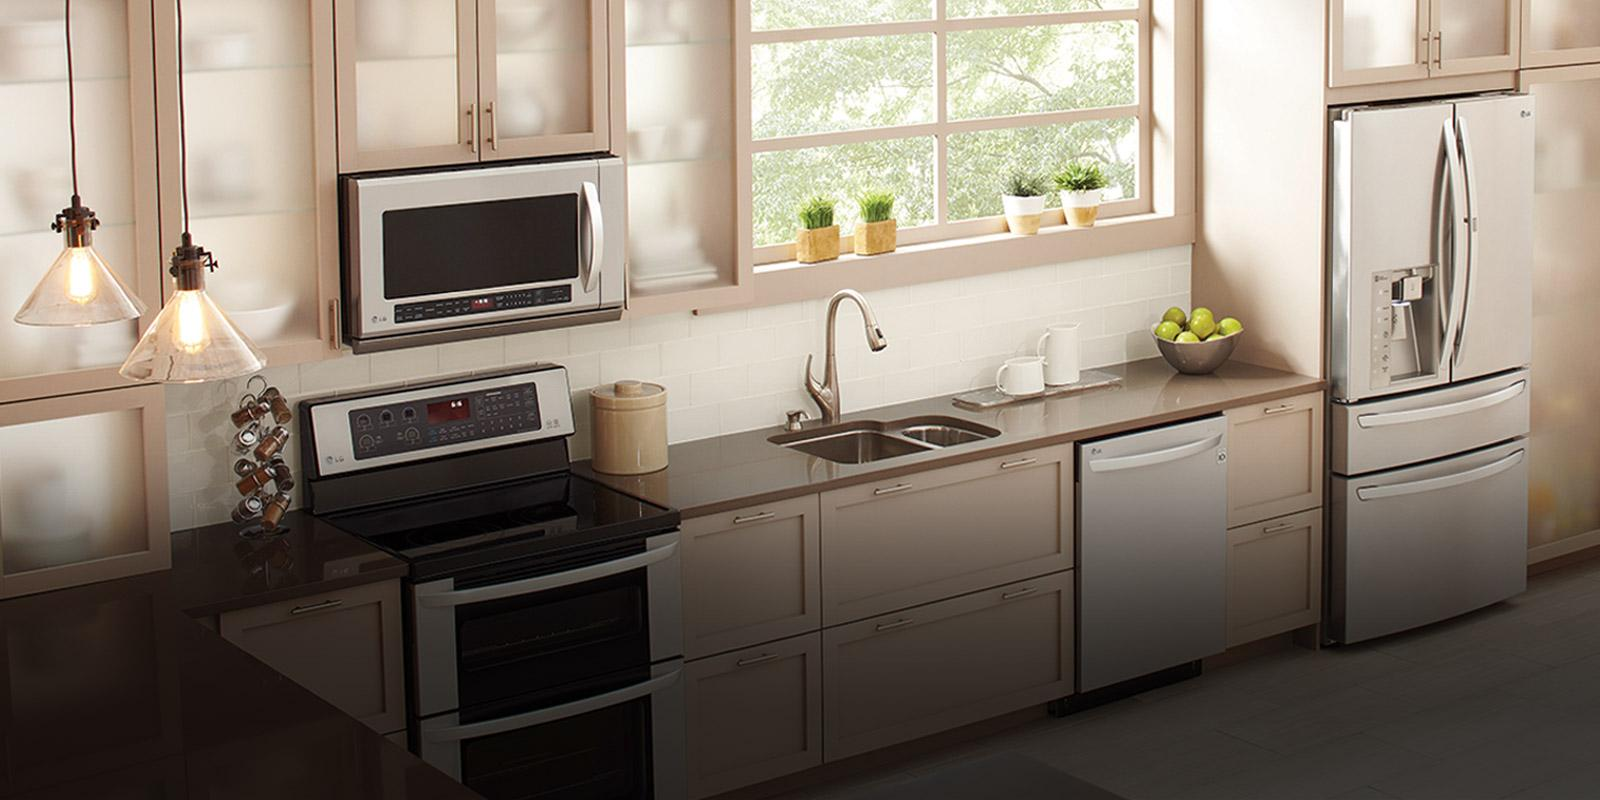 Bright, Modern Kitchen Featuring An LG Over The Range Microwave Oven.